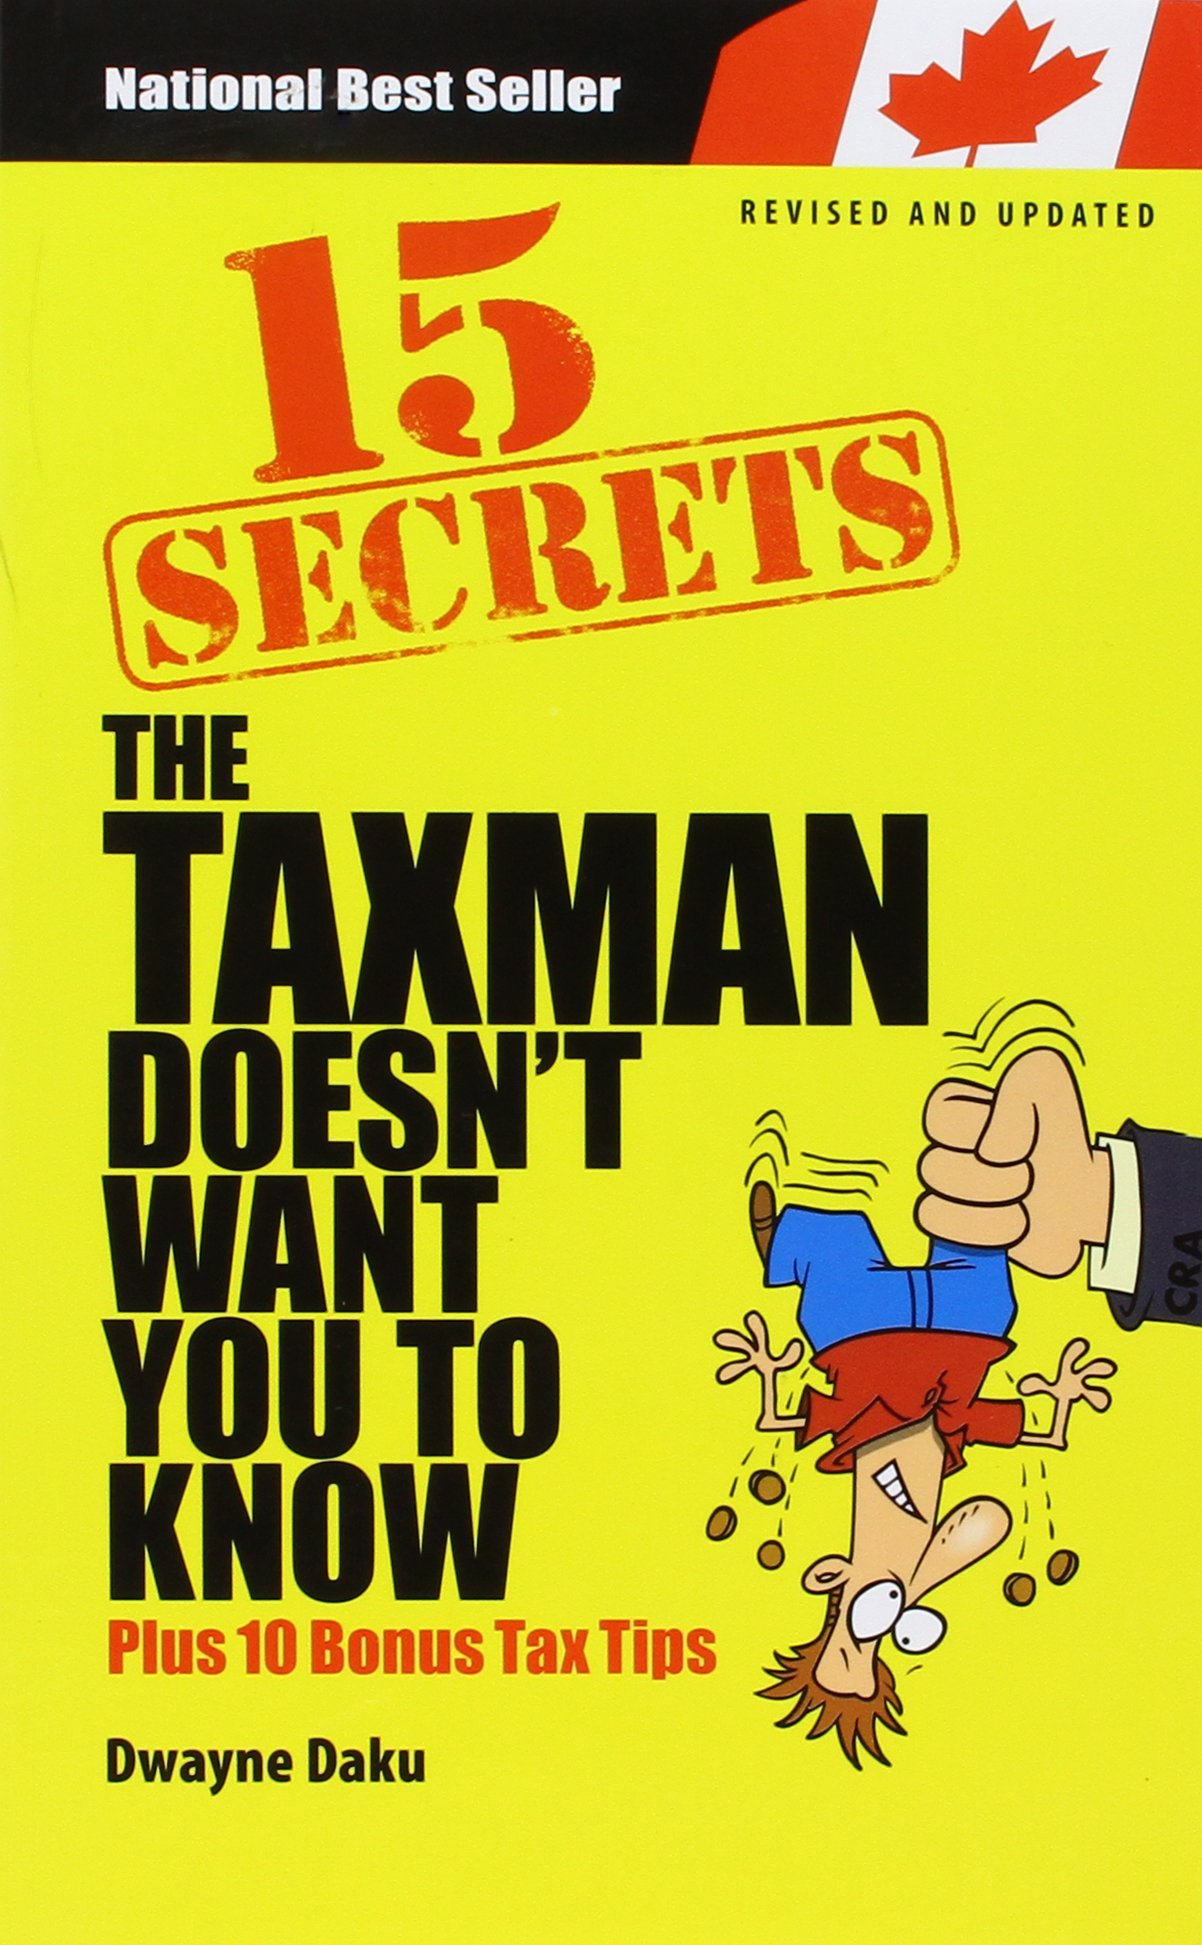 The 15 Secrets the Taxman Doesn't Want You to Know : Plus 10 Bonus